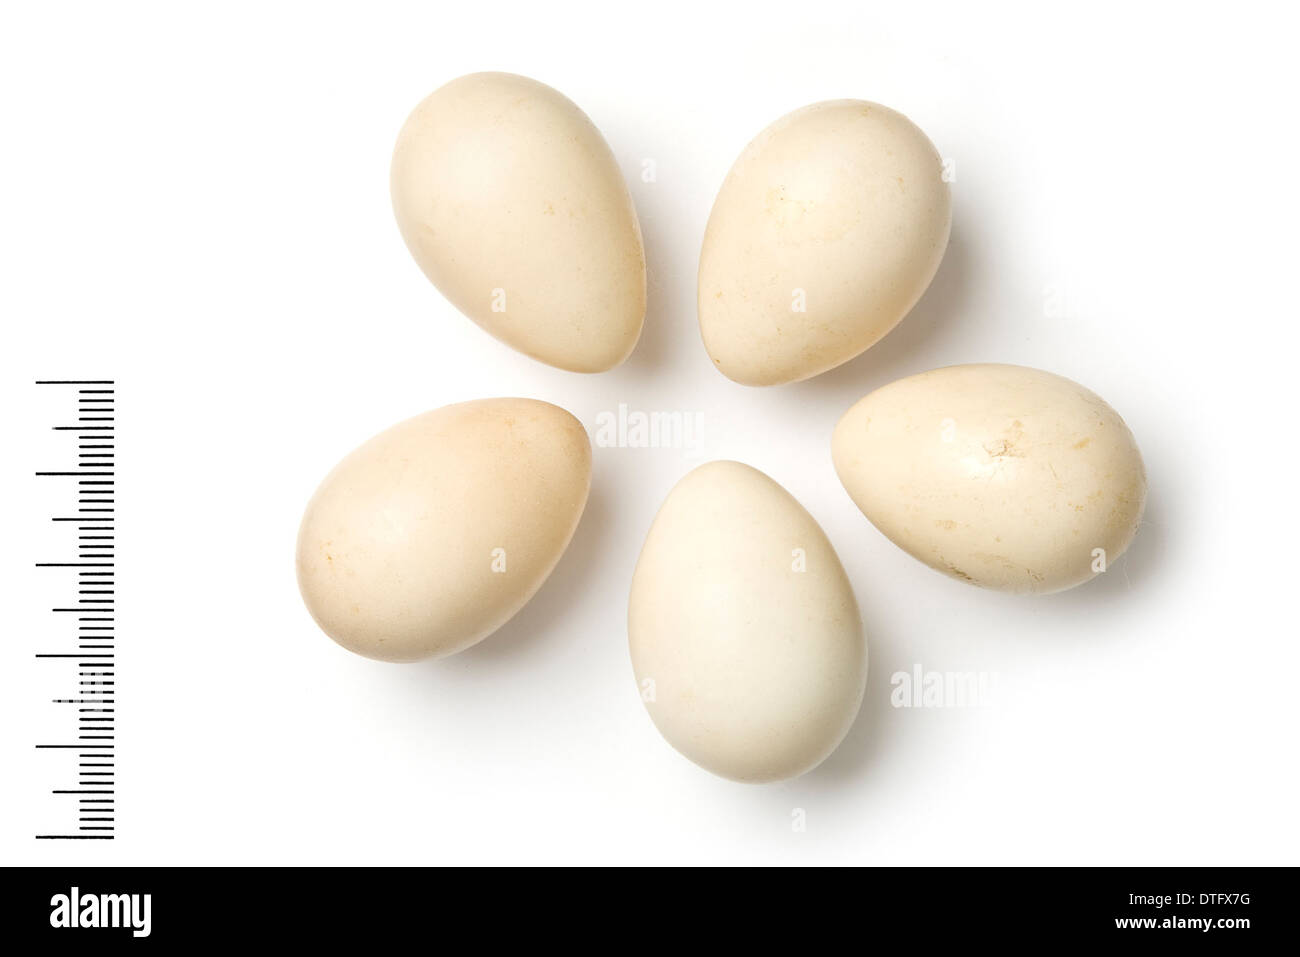 Ammoperdix heyi, sand partridge eggs - Stock Image